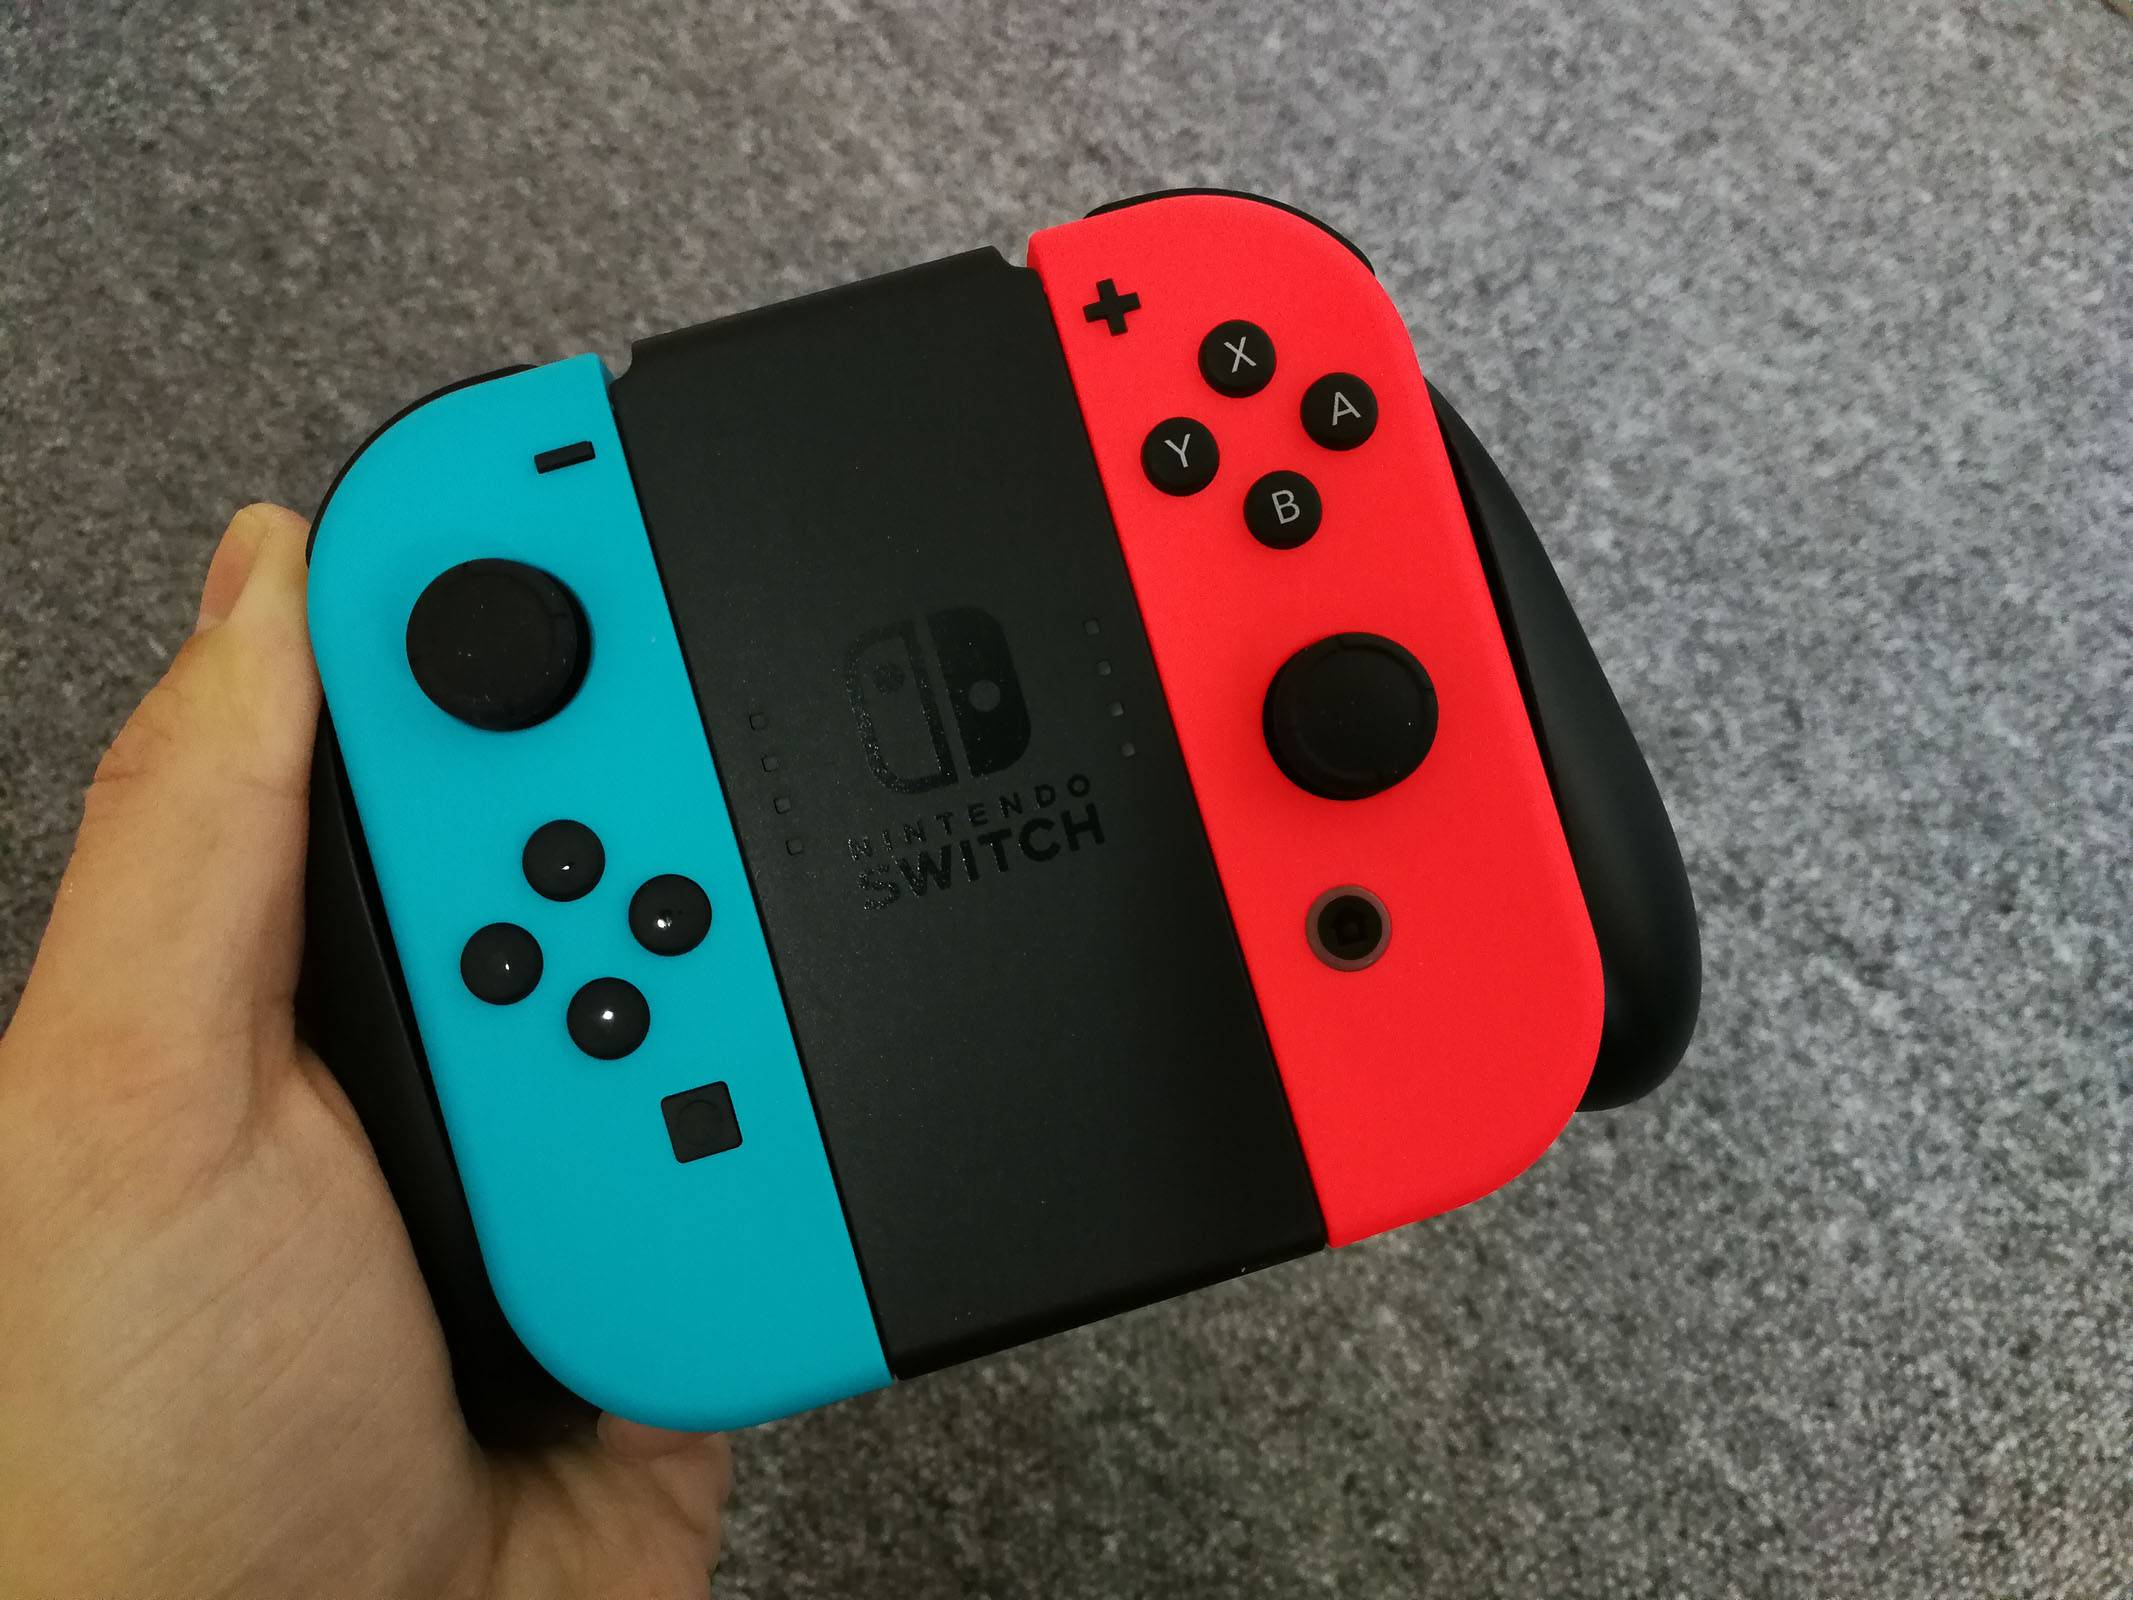 Nintendo Switch Unboxing PingWest Photo By Hao Ying 38